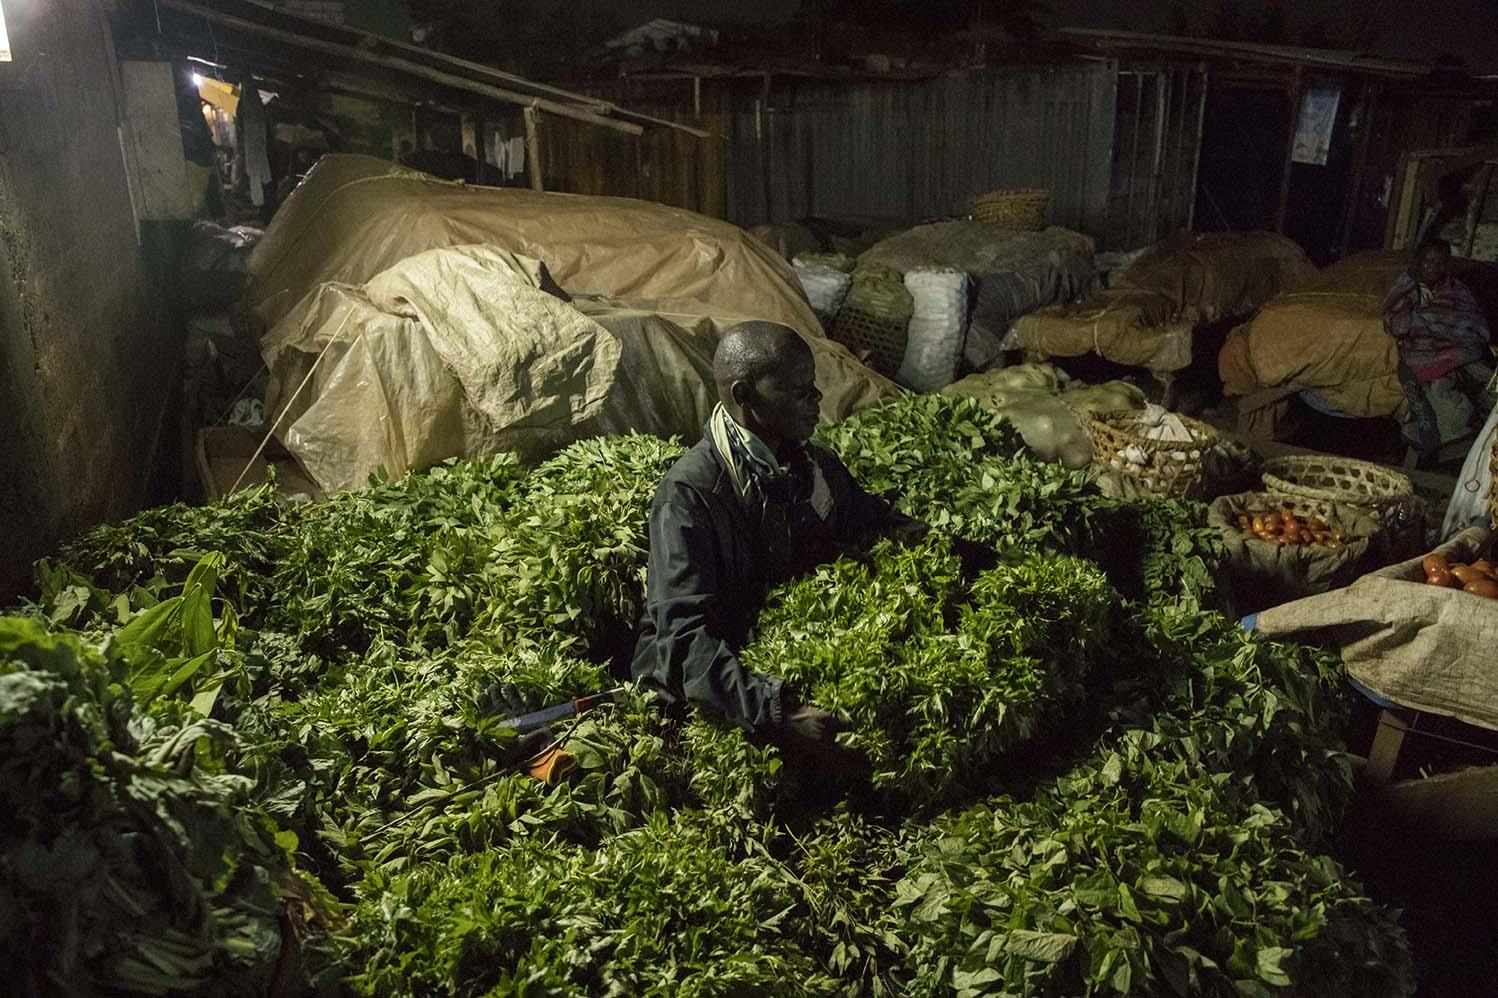 Moses Onen (42), a Nakawa Market vendor, counts bundles of greens to sell in the morning. Food delivery trucks were one of the few vehicles exempted from the driving ban by the Ugandan government. They were allowed to operate during the night since they were essential for delivering food into Kampala.